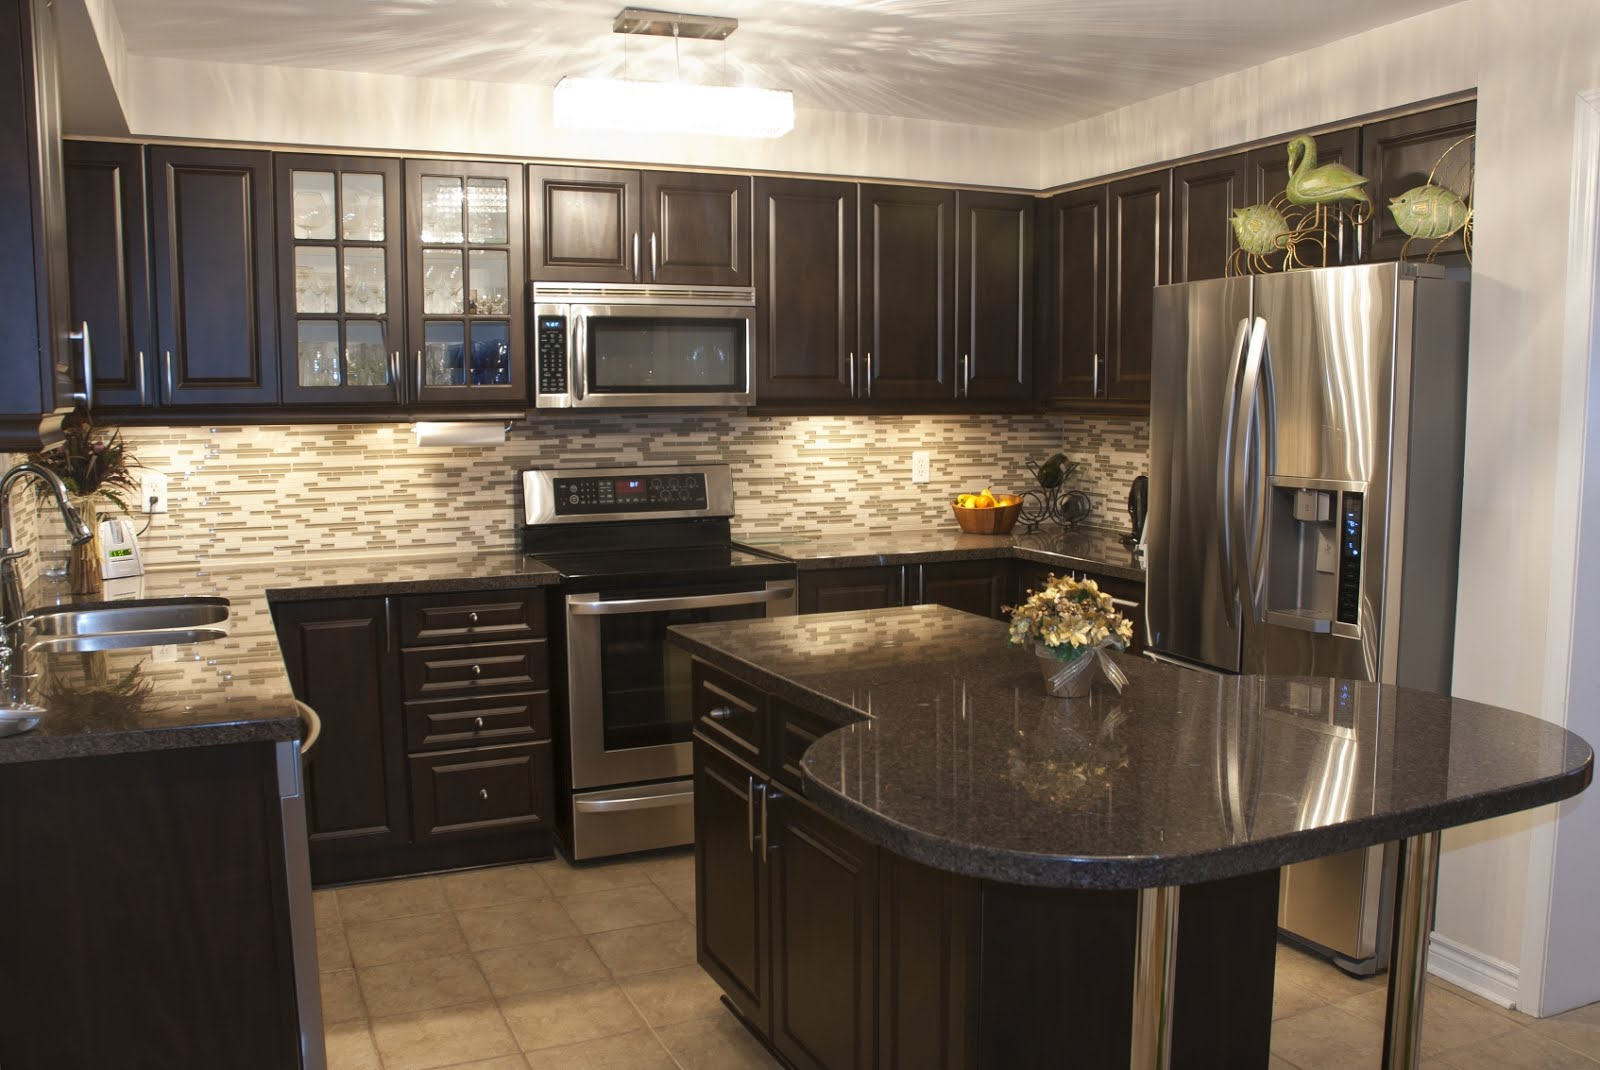 Salvaged kitchen cabinets charlotte nc -  Kitchen Cabinets Charlotte Nc Popular This Would Make Your Eyes Go Vow For Sure For Its Black And White Beauty Along With The Glassy Look